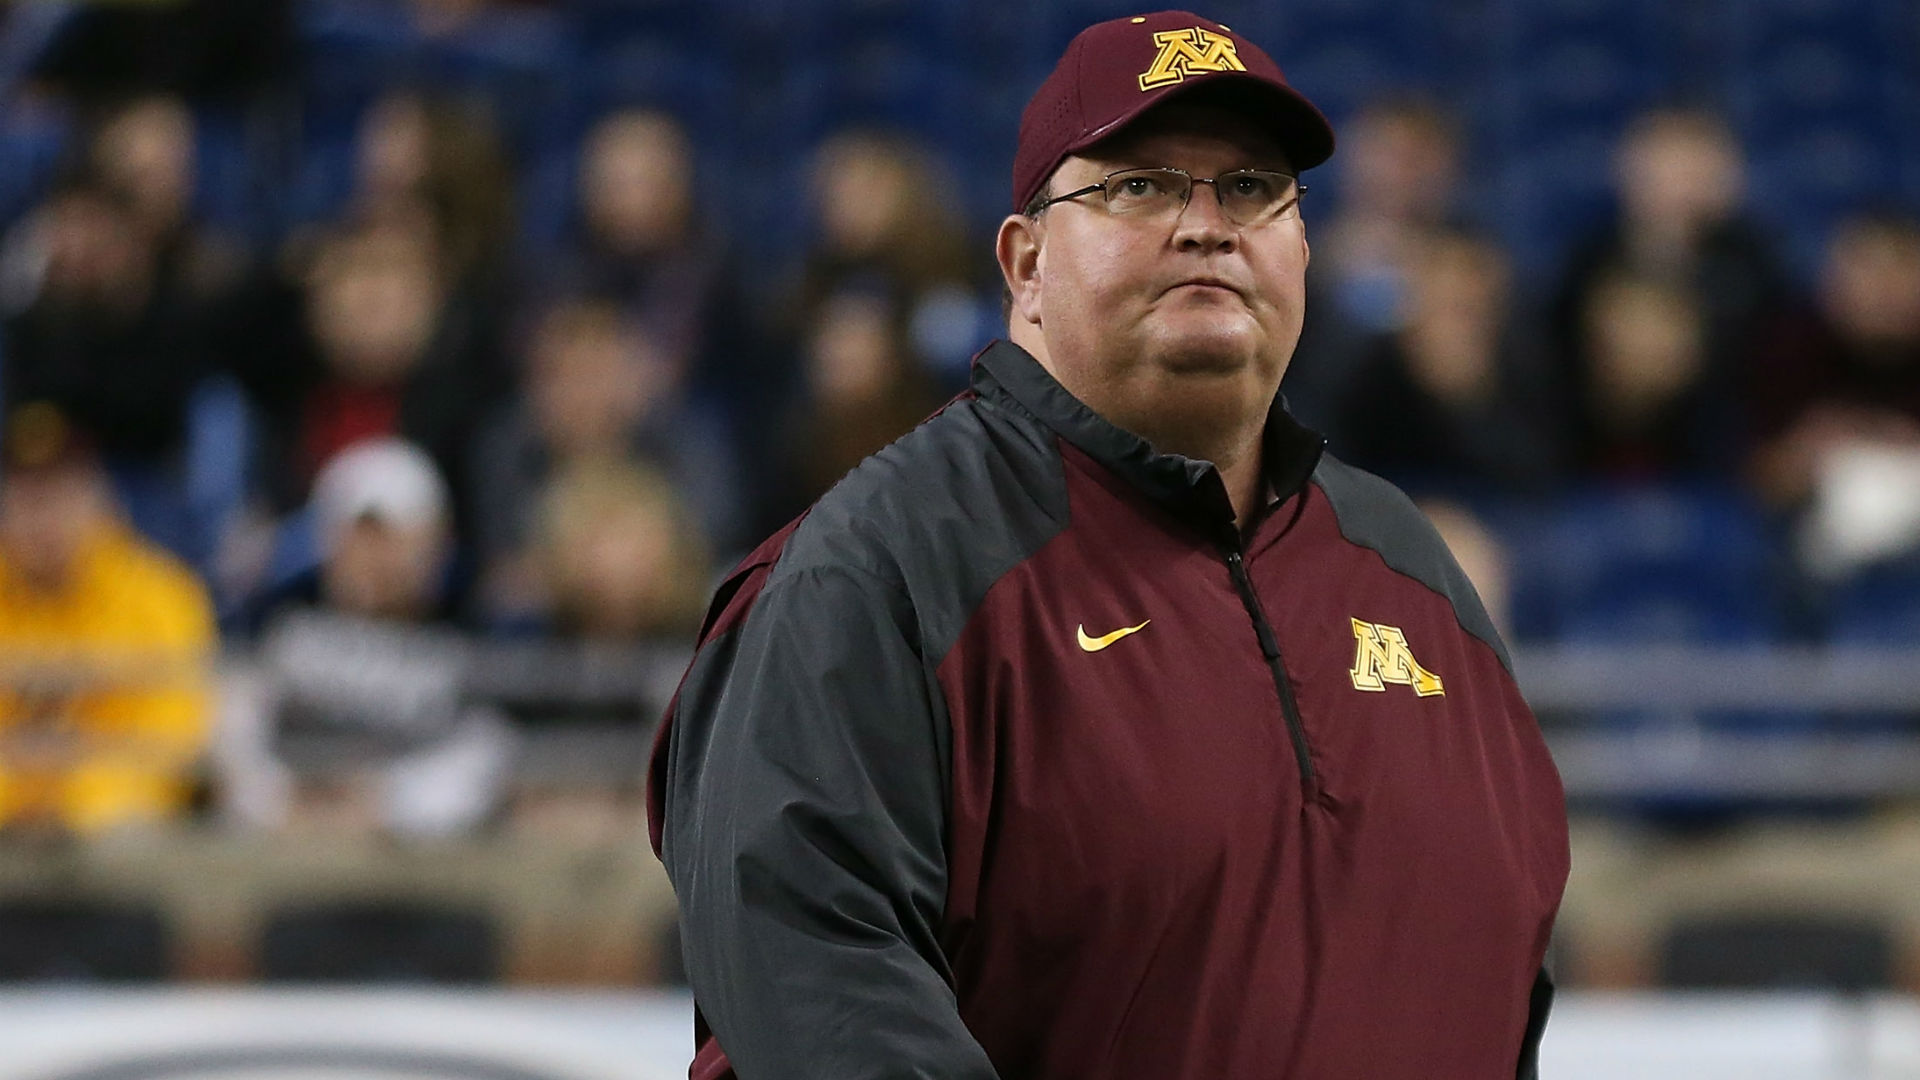 Minnesota Golden Golphers football team won't boycott Holiday Bowl over players' suspensions